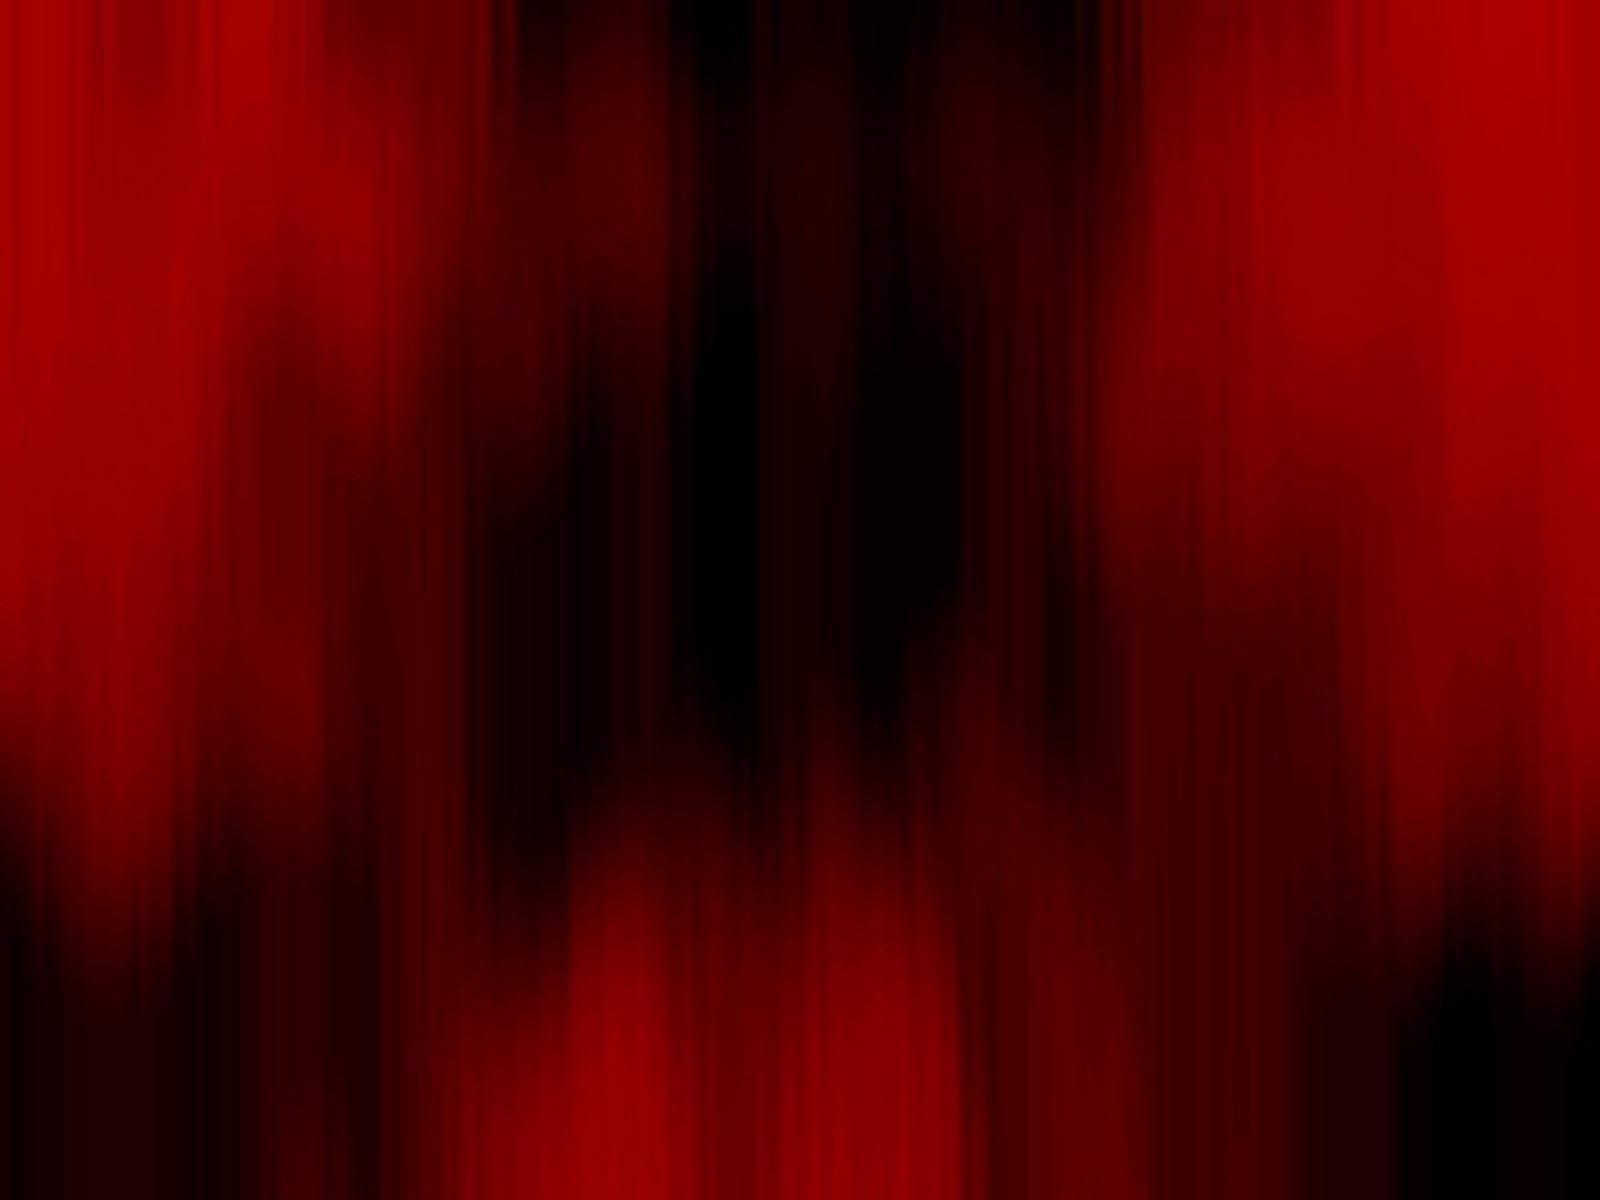 Red And Black Backgrounds Wallpaper Cave